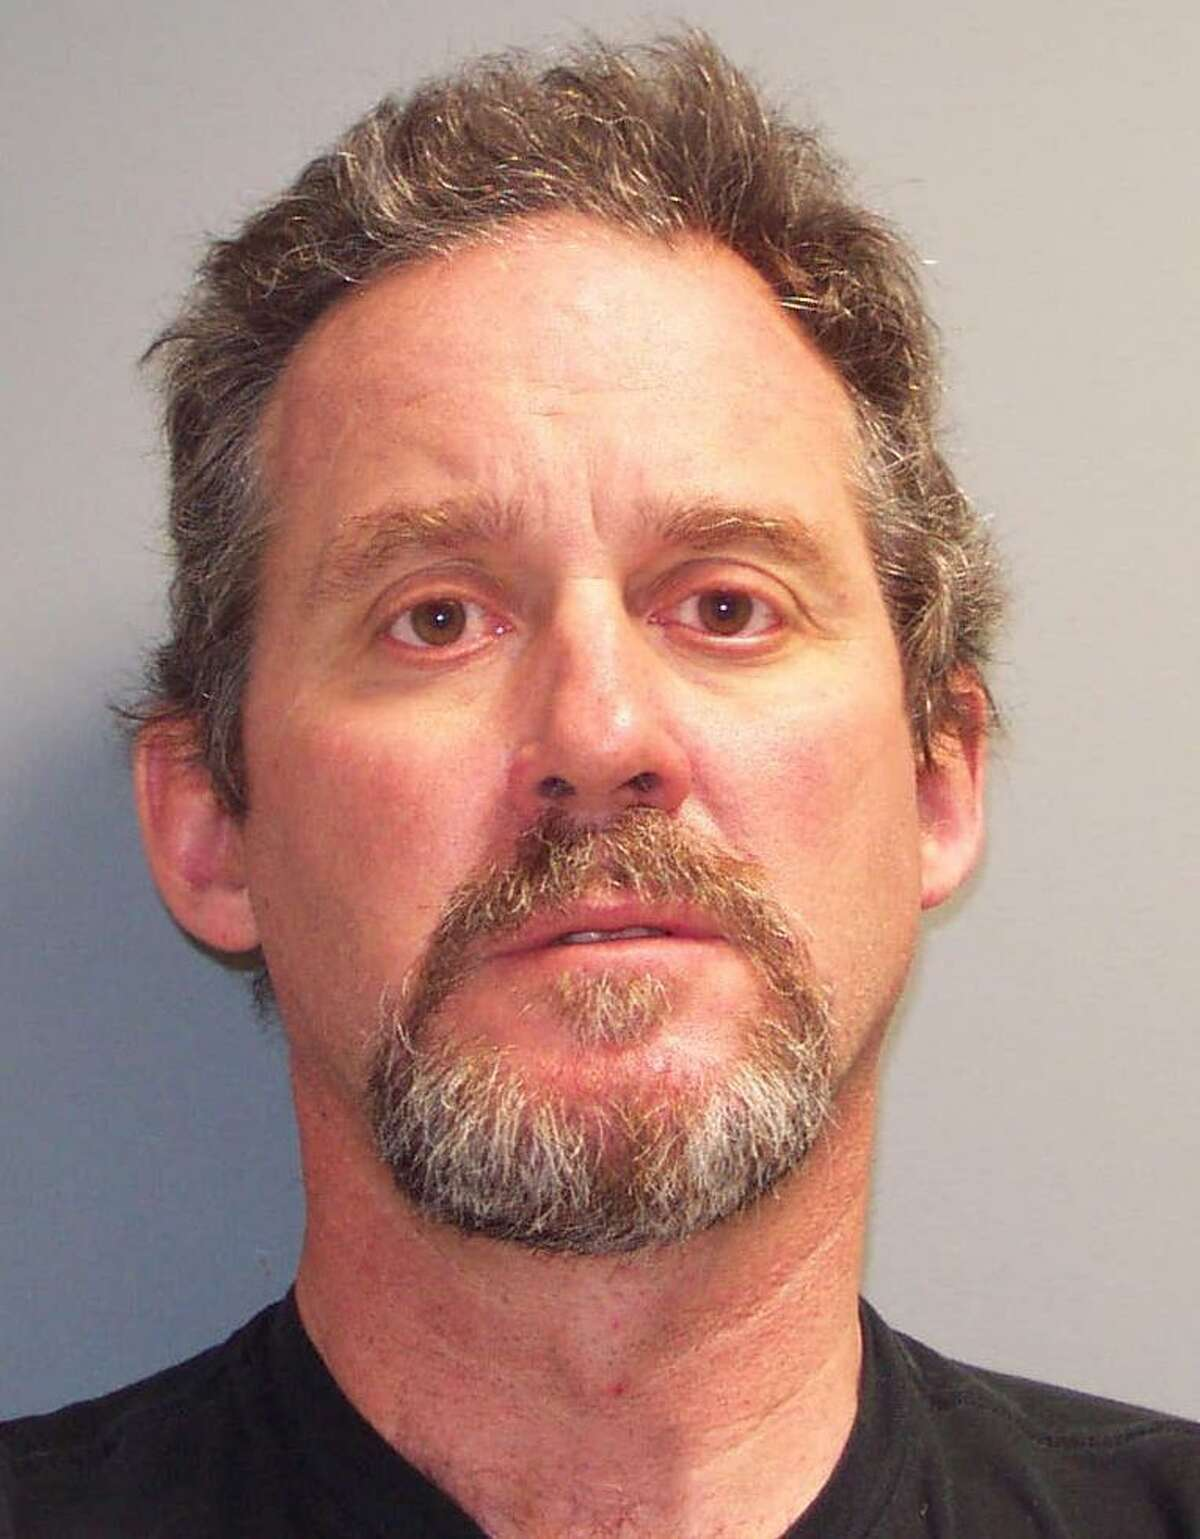 John Tate, 54, a teacher at Brien McMahon High School from Trumbull Conn. was arrested Thursday and charged with second-degree sexual assault for having an inappropriate sexual relationship with a 17-year-old student.